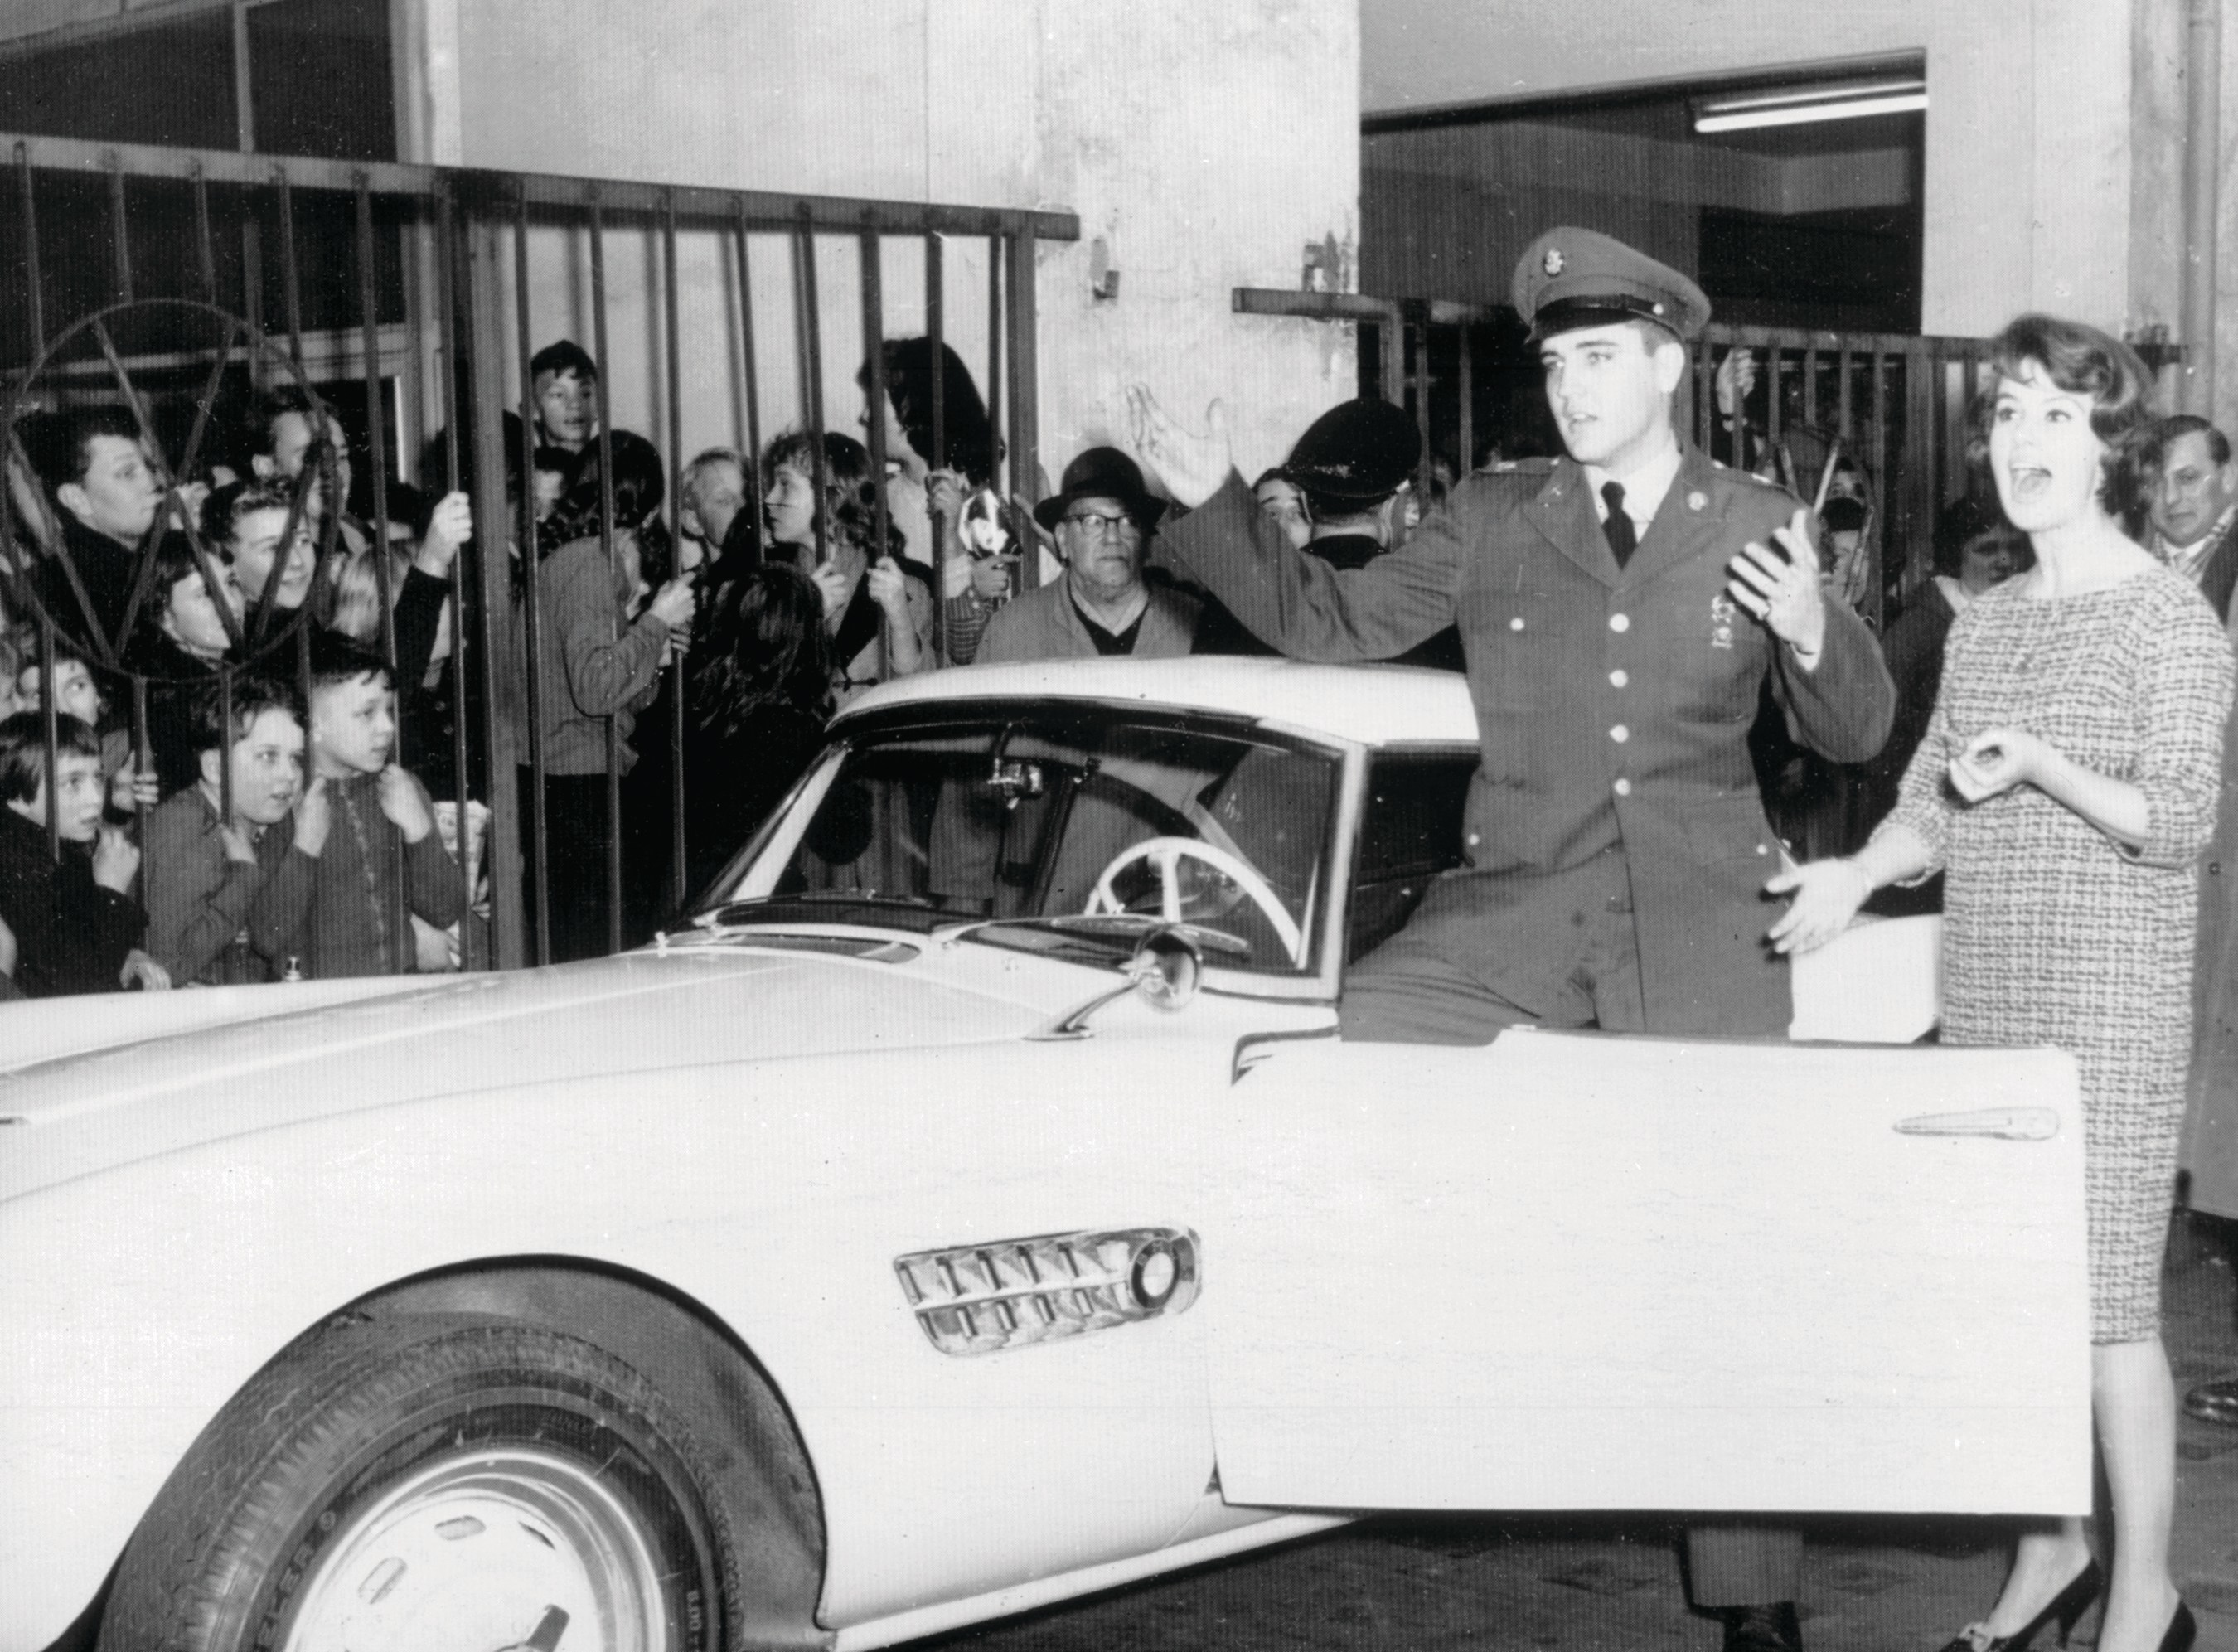 Elvis Presley in front of his BMW 507. Copyright (C) BMW AG. (Use approved for press purposes only)